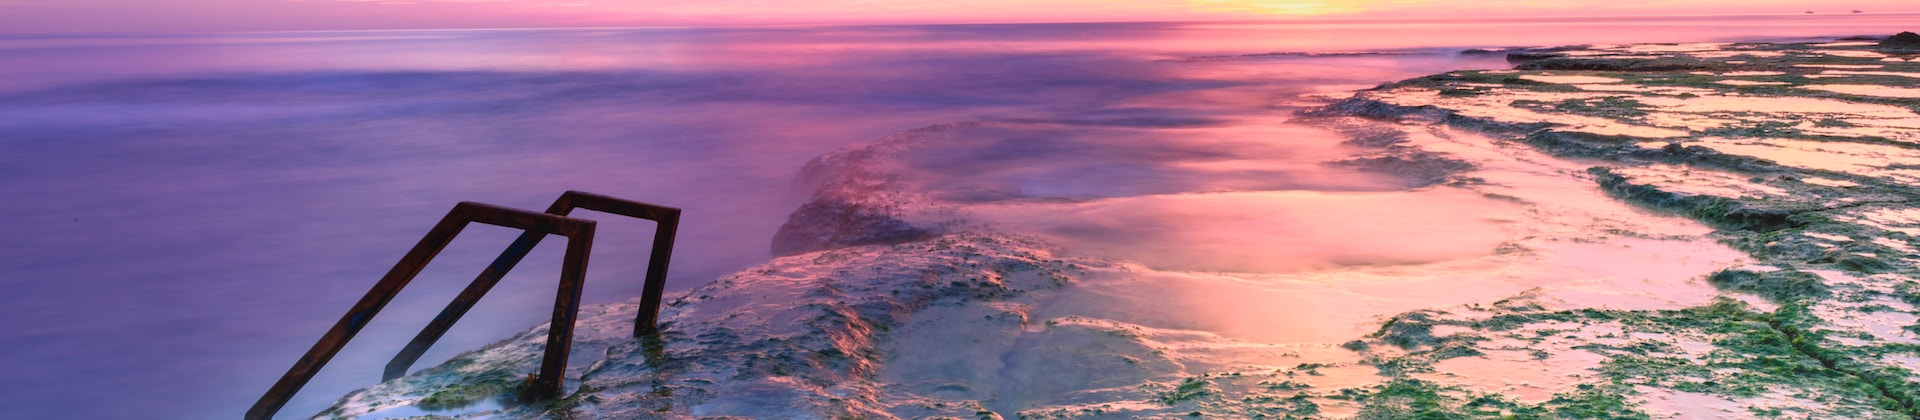 coastline and sea with a purple tint